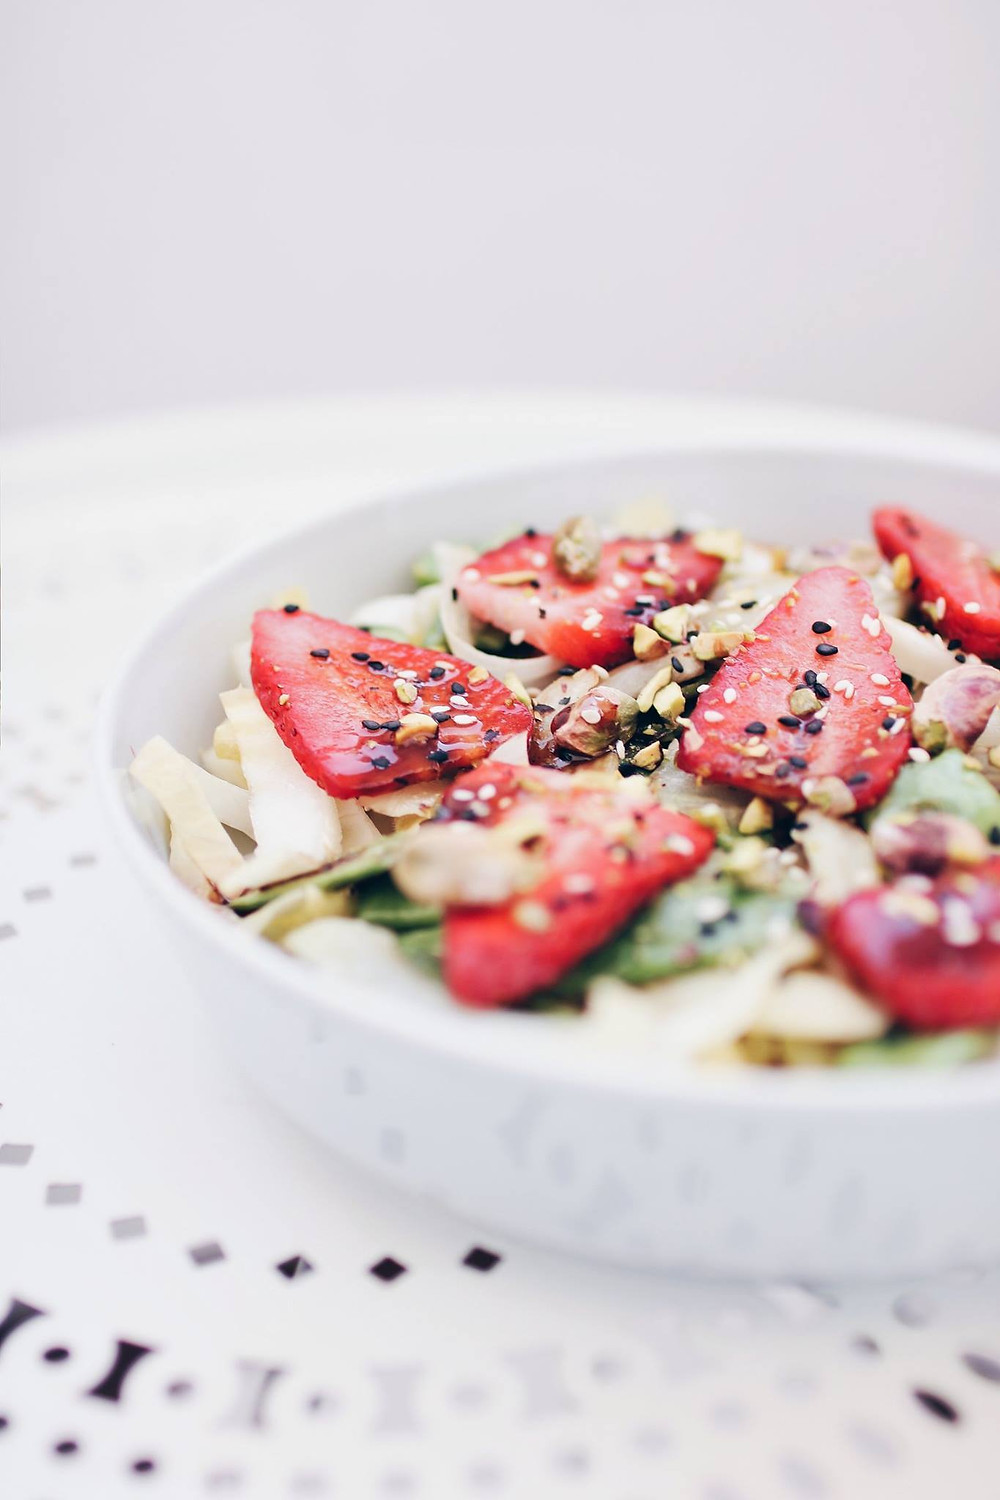 A serving dish sits on a white table. A warm and cold salad sits in the dish, consisting of green beans, fennel and endive, along with strawberries, sesame seeds, pistachios and a balsamic reduction.